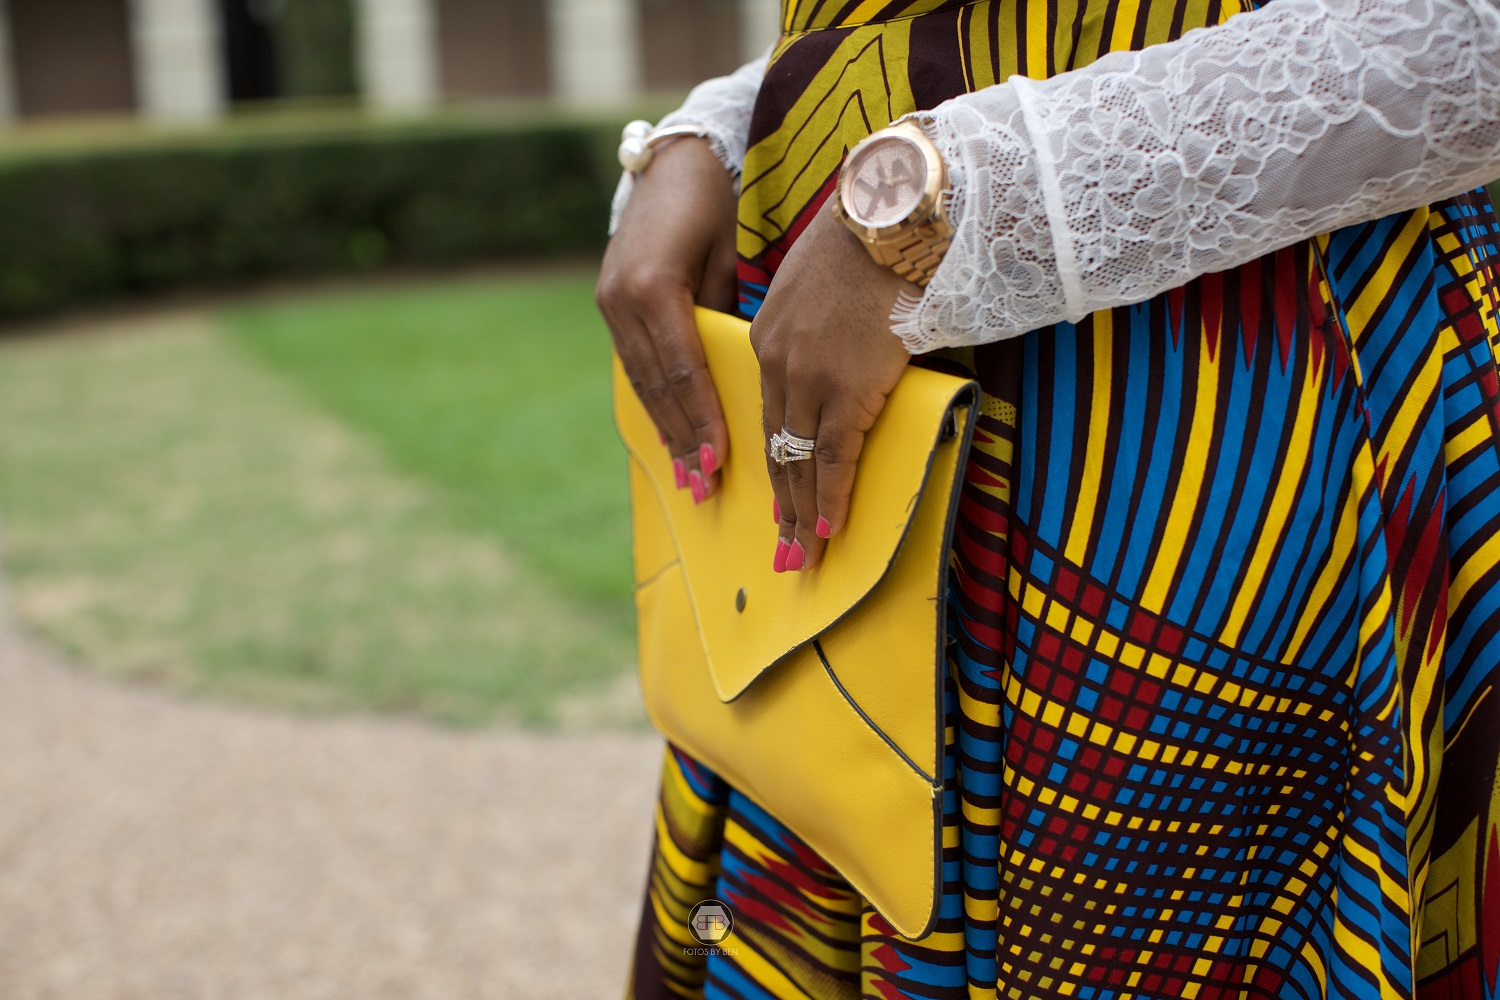 It's all in the details - Lace, Ankara, Ruffles and Stripes H&M Lace Top 3reec's Ankara African Wax Print Dashiki A-line Skirt Macy's Nude Pumps SheIn Oversize Envelope Clutch Bag A'GACI Retro Vintage Sunglasses 60s 70s Fashion